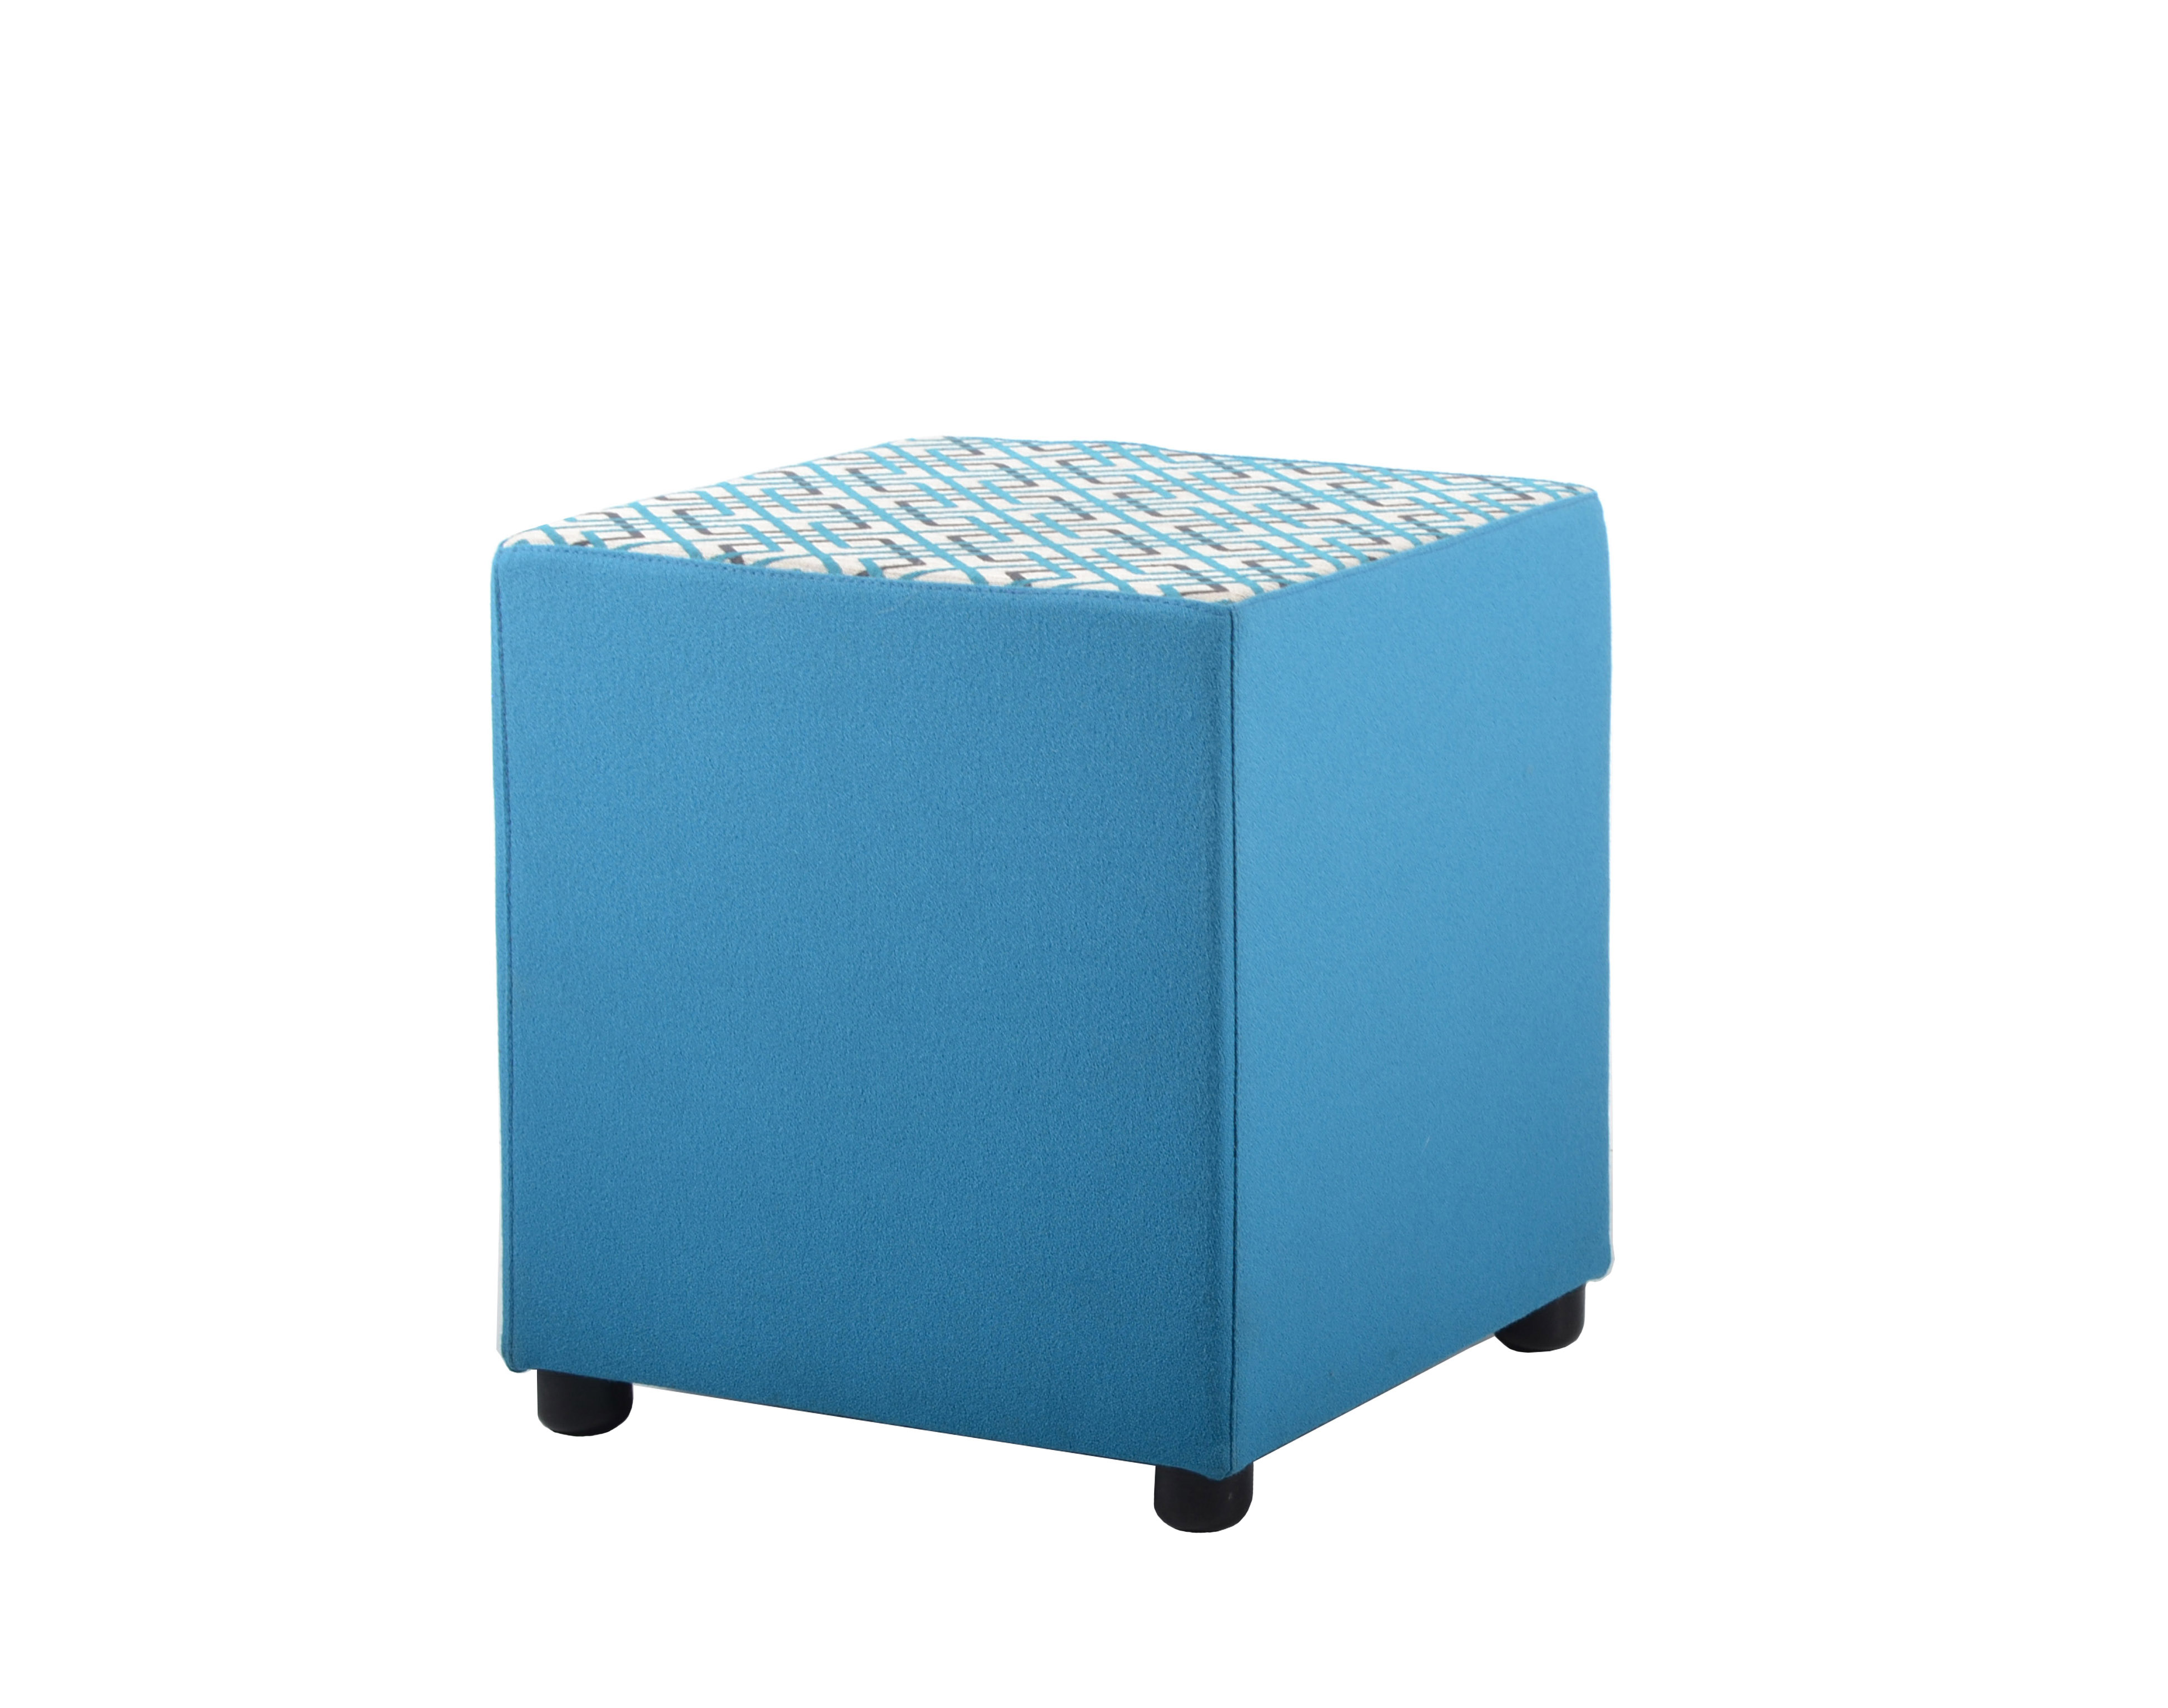 cube ottoman wallaces office